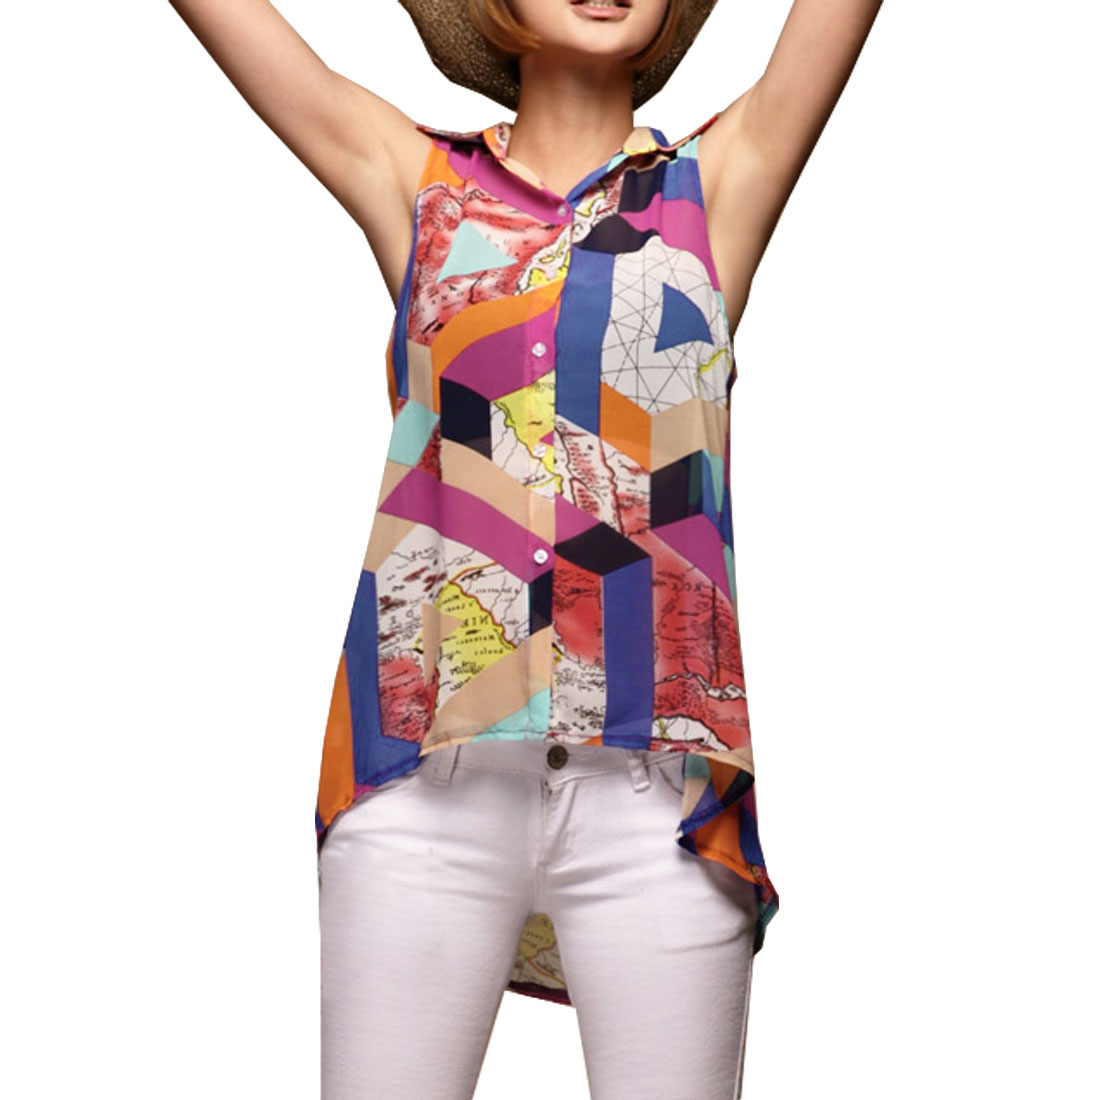 Woman Assorted Color Map Print Chiffon Single Breasted Tunic Top Vest XS